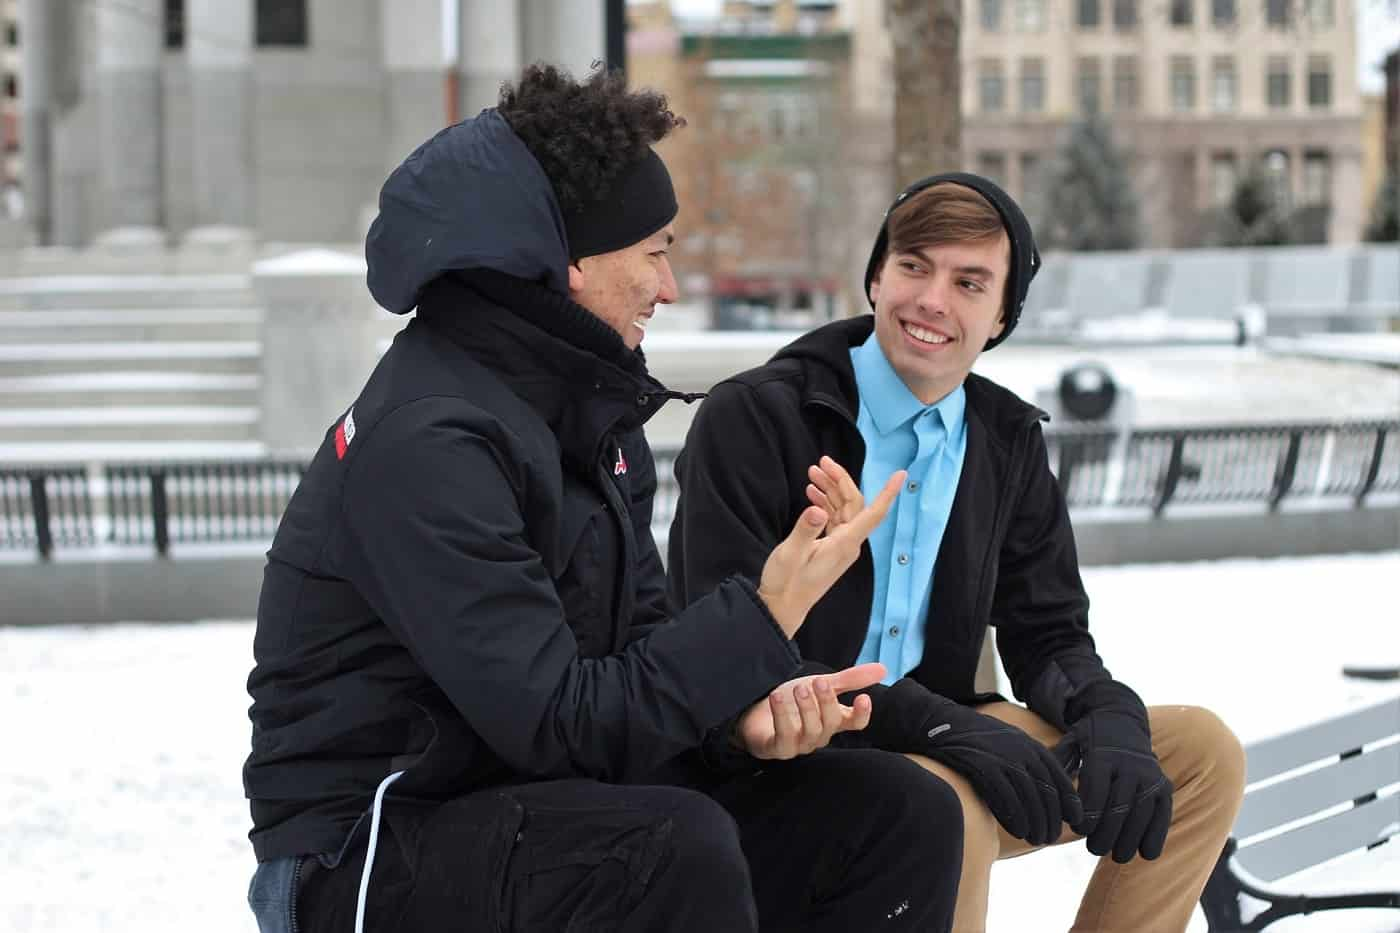 Two men talking peacefully on bench in winter - Say What You Mean